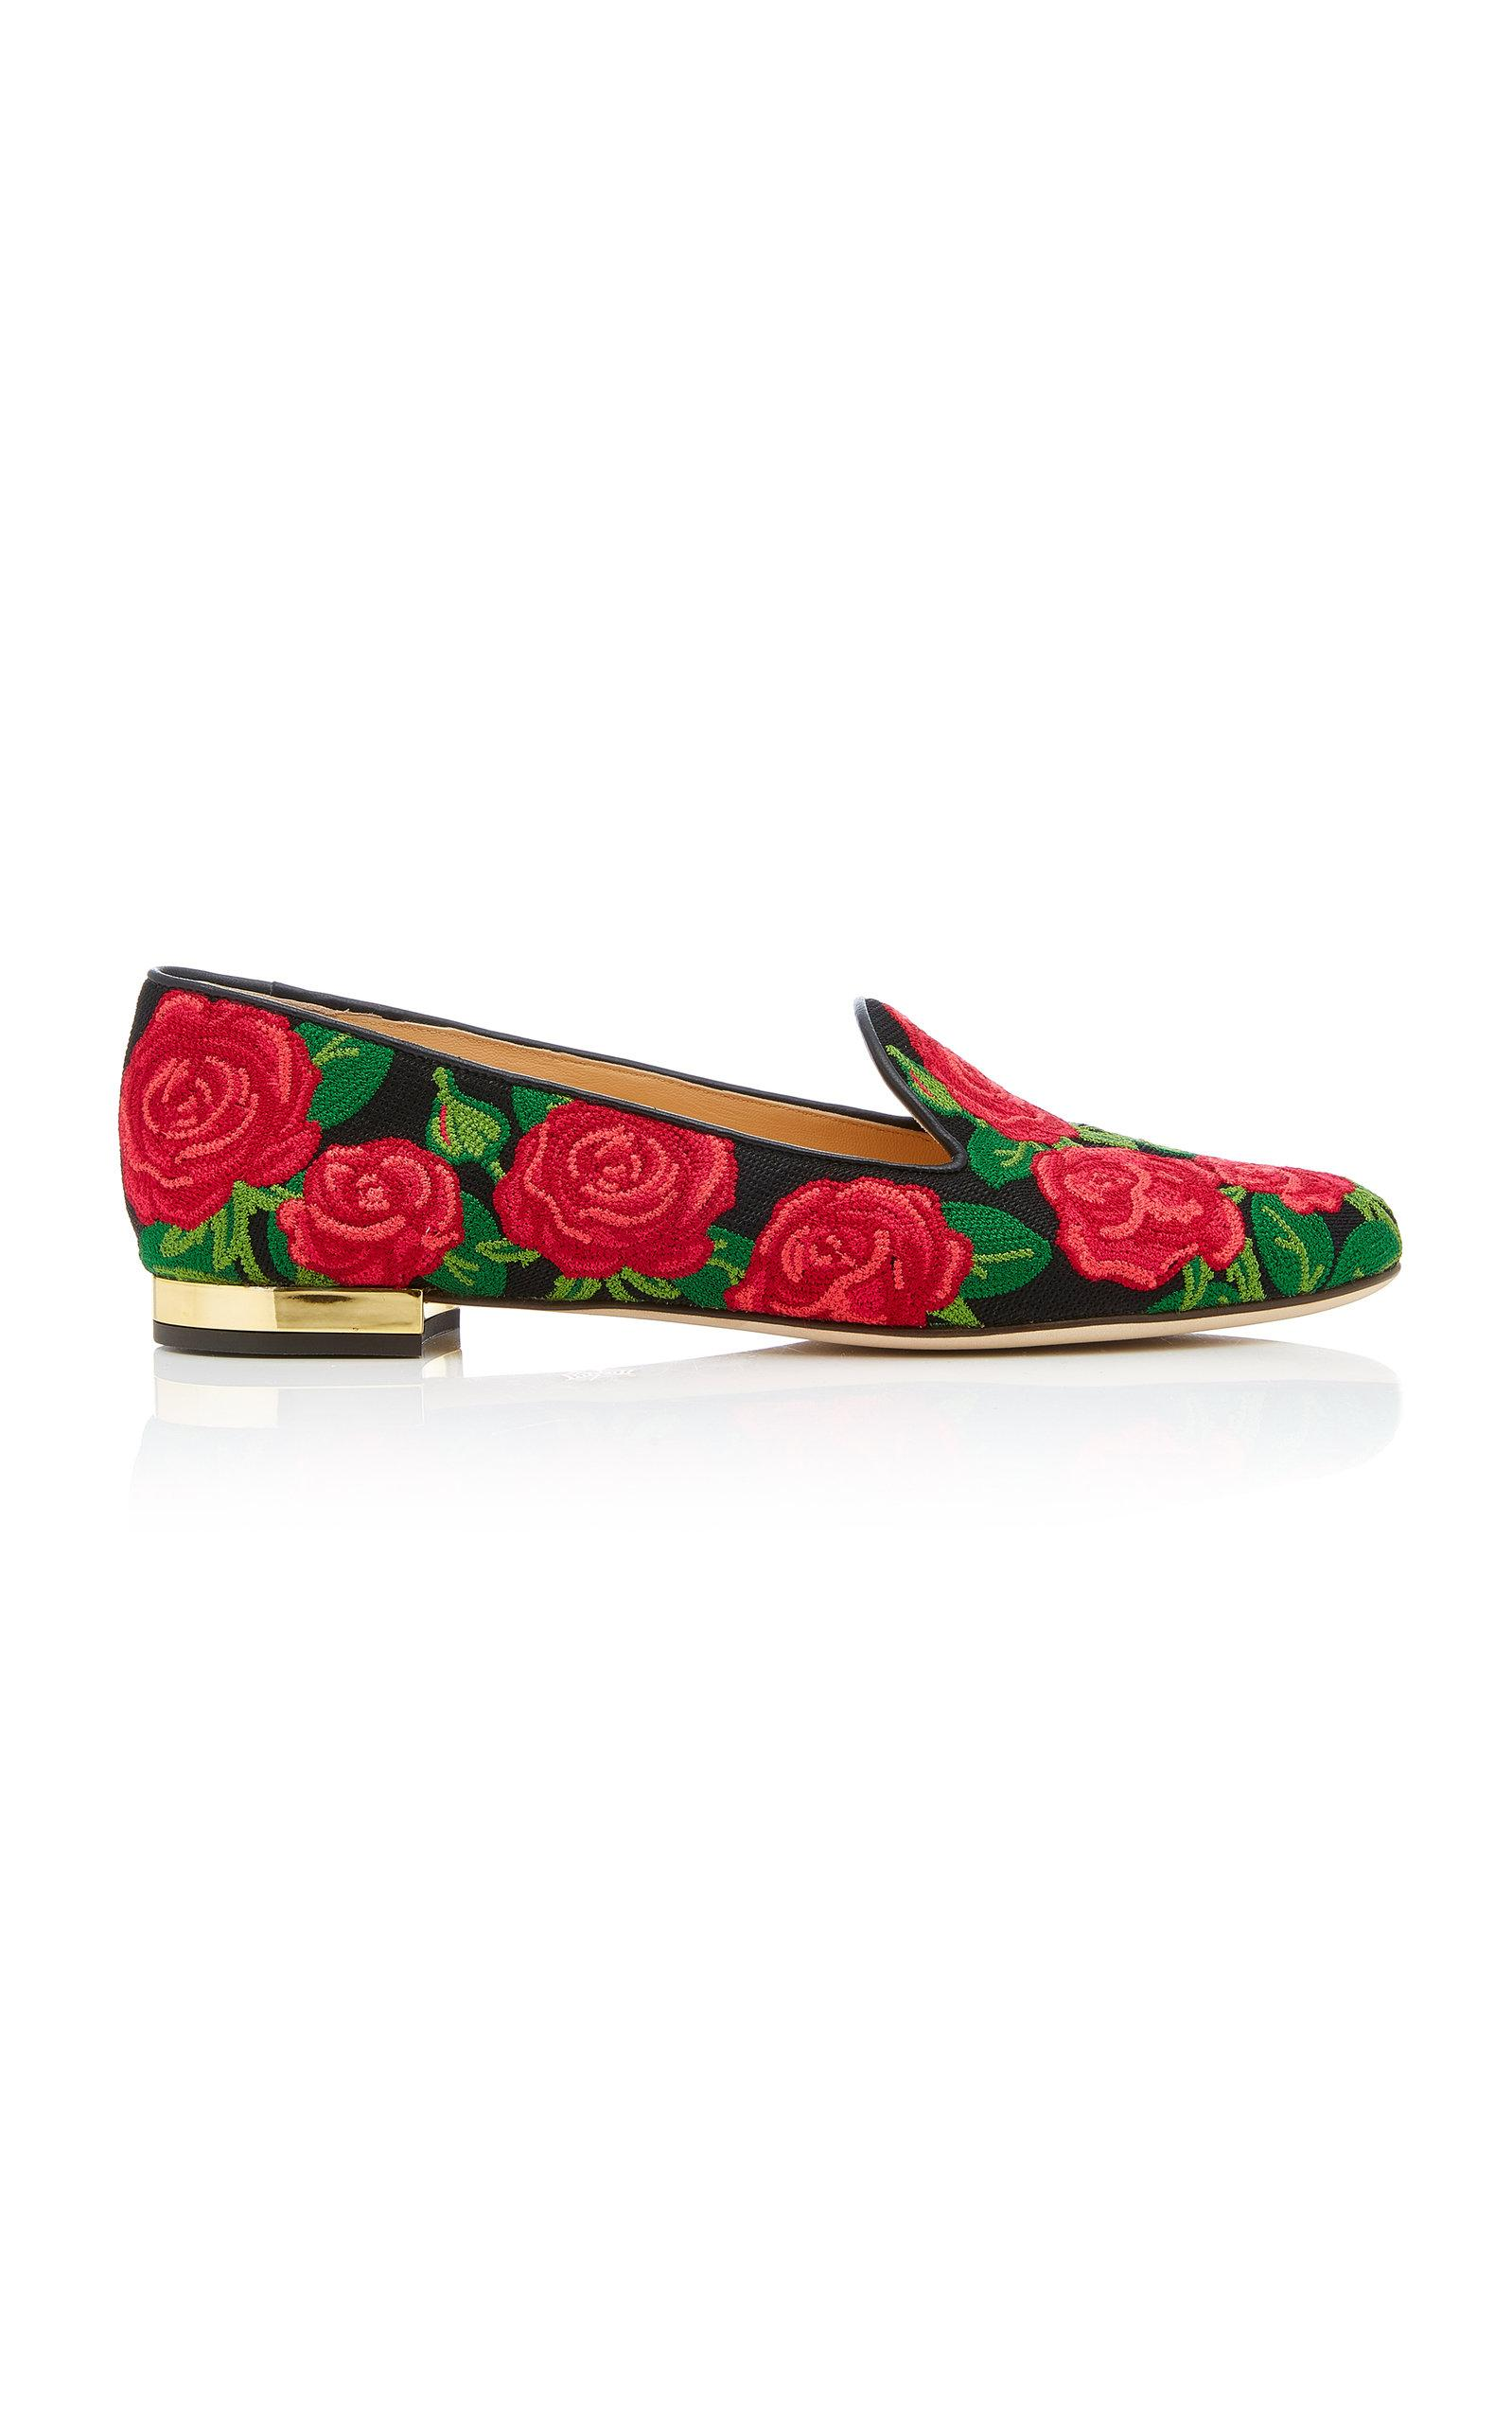 Charlotte Olympia M'o Exclusive: Rose Loafer In Floral